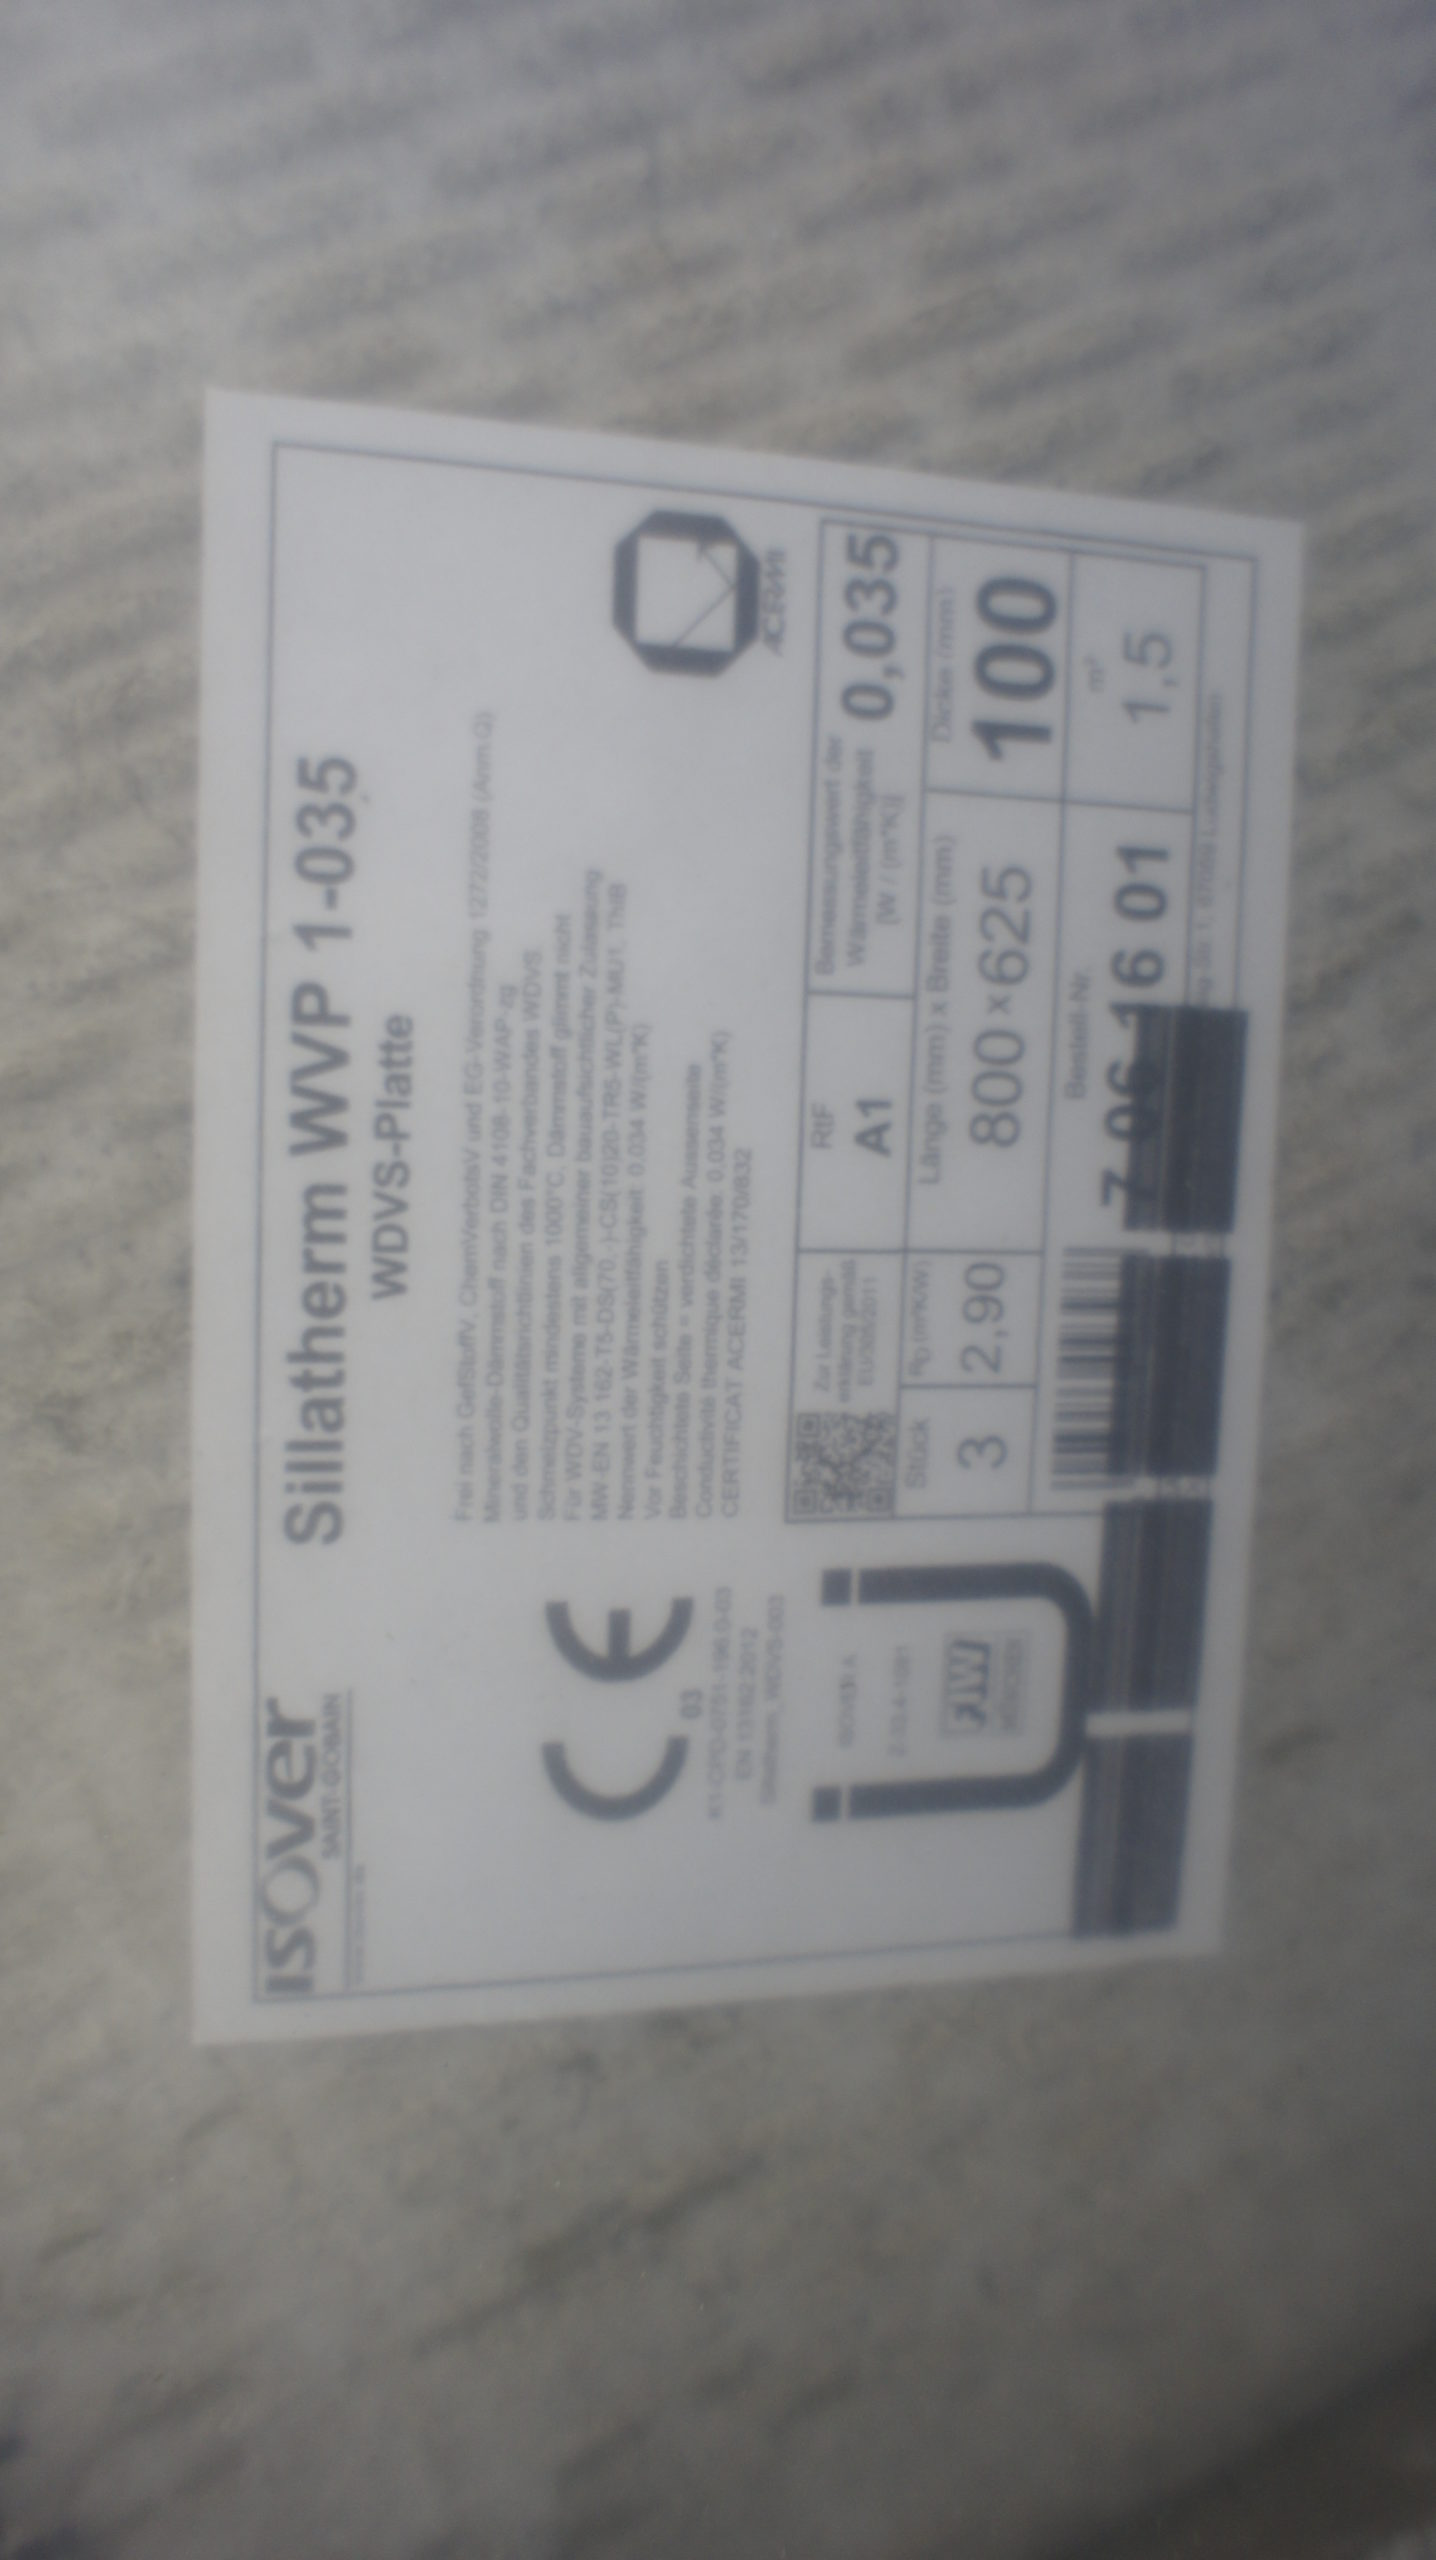 ISOVER Sillatherm WVP 1-035